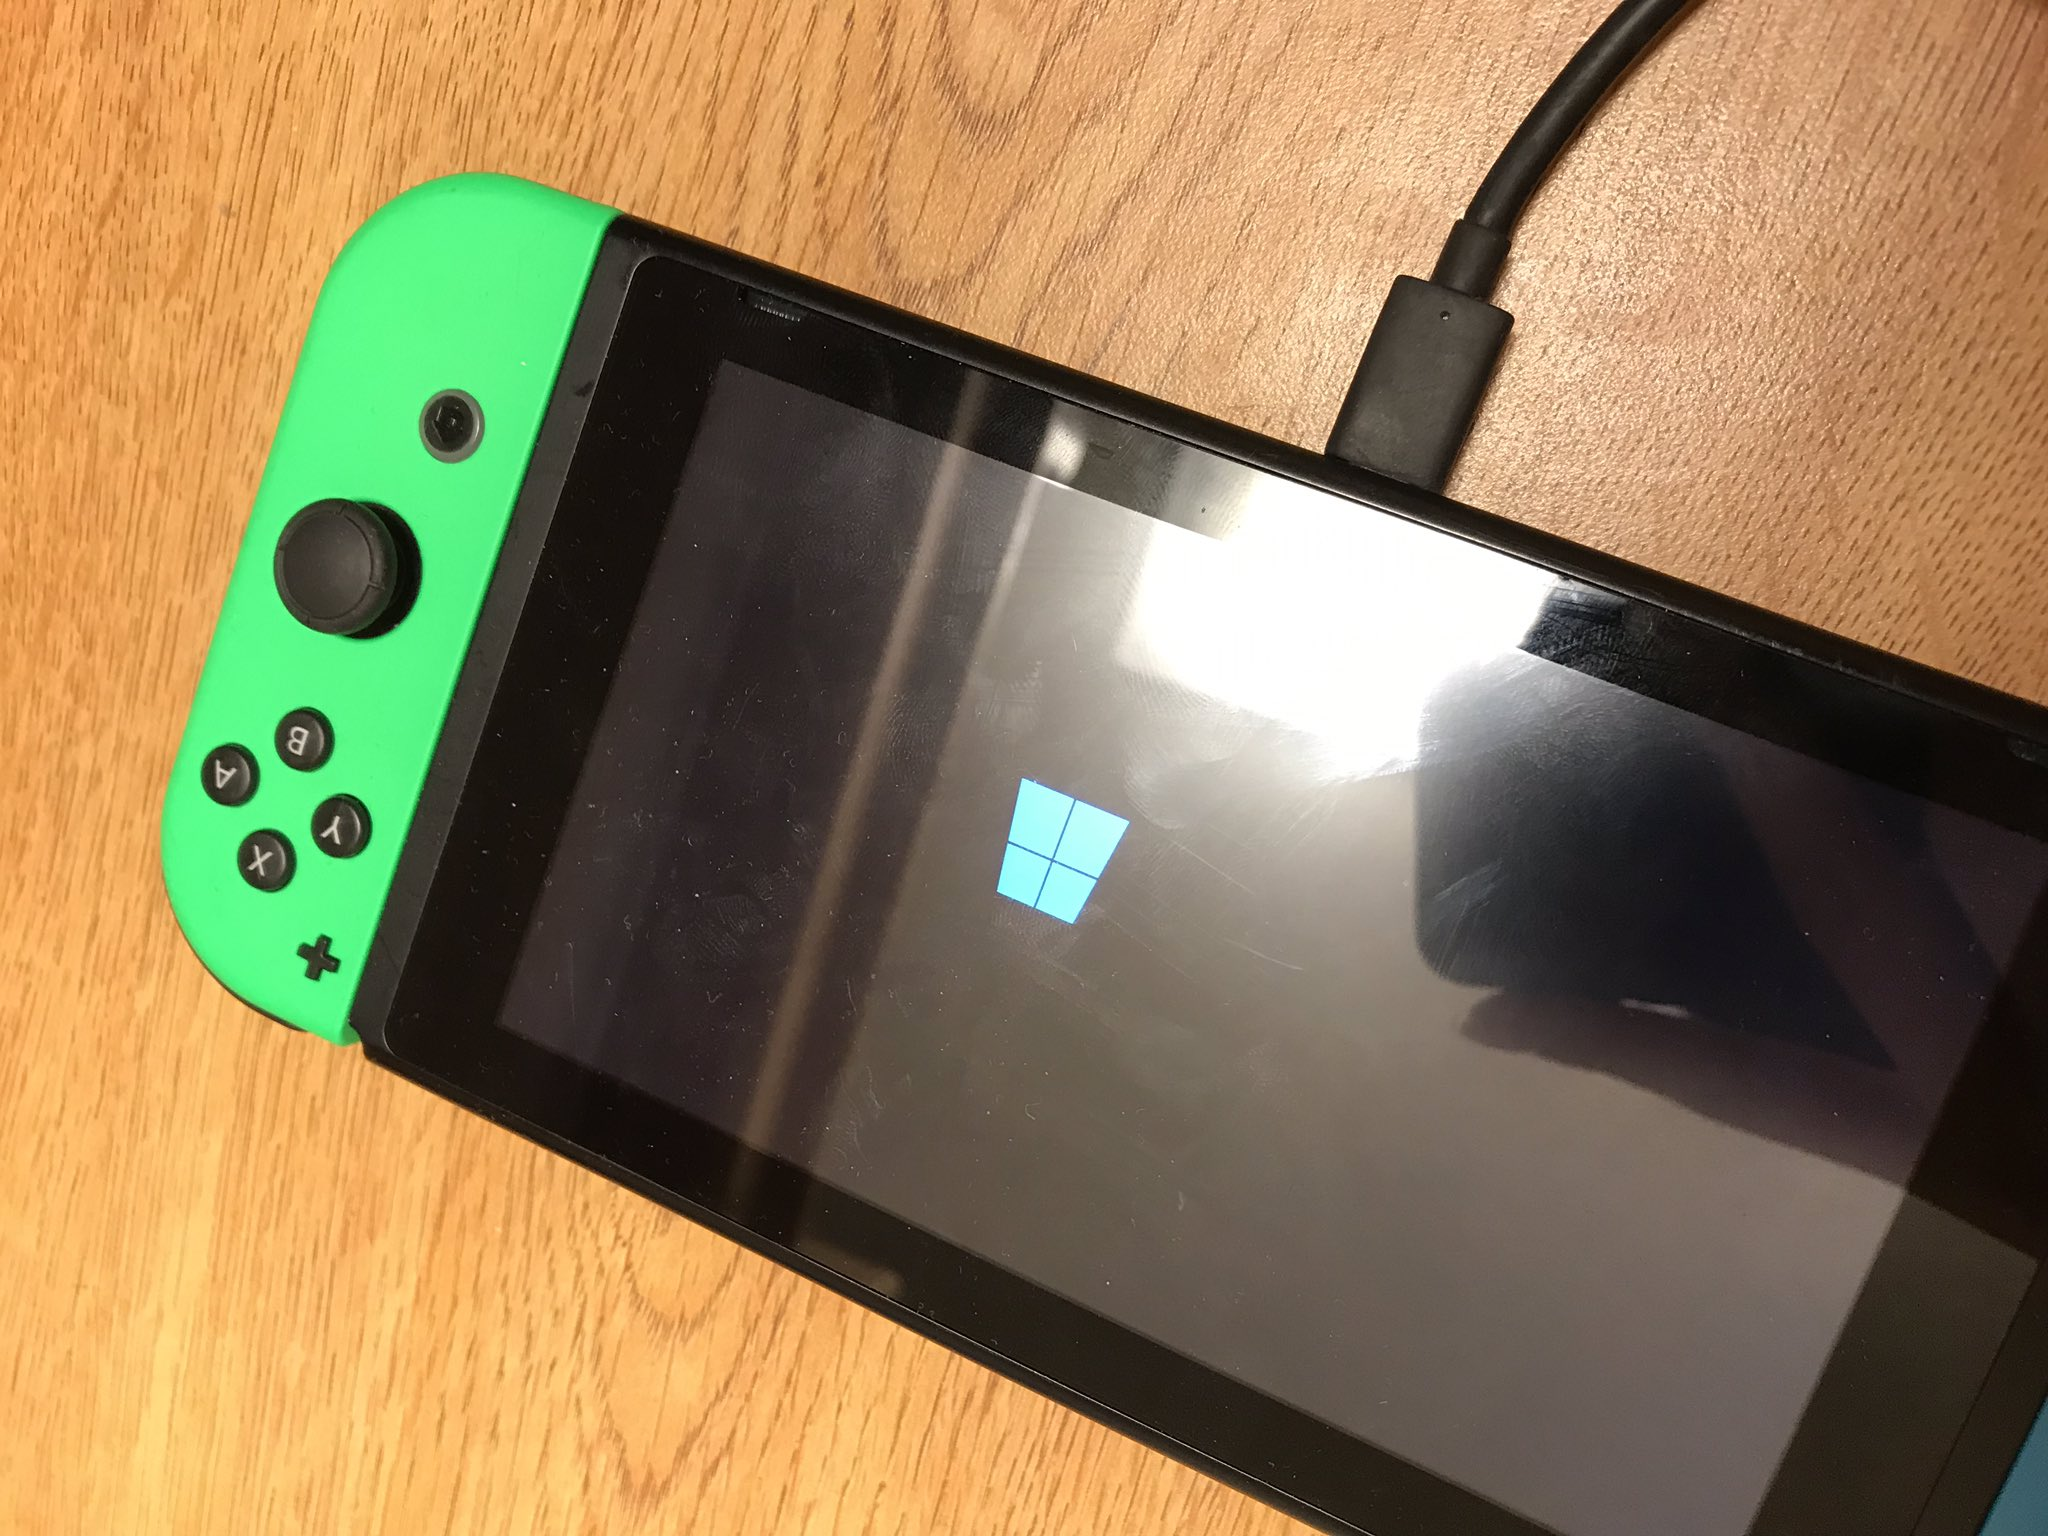 Windows 10 ARM currently being ported to the Nintendo Switch